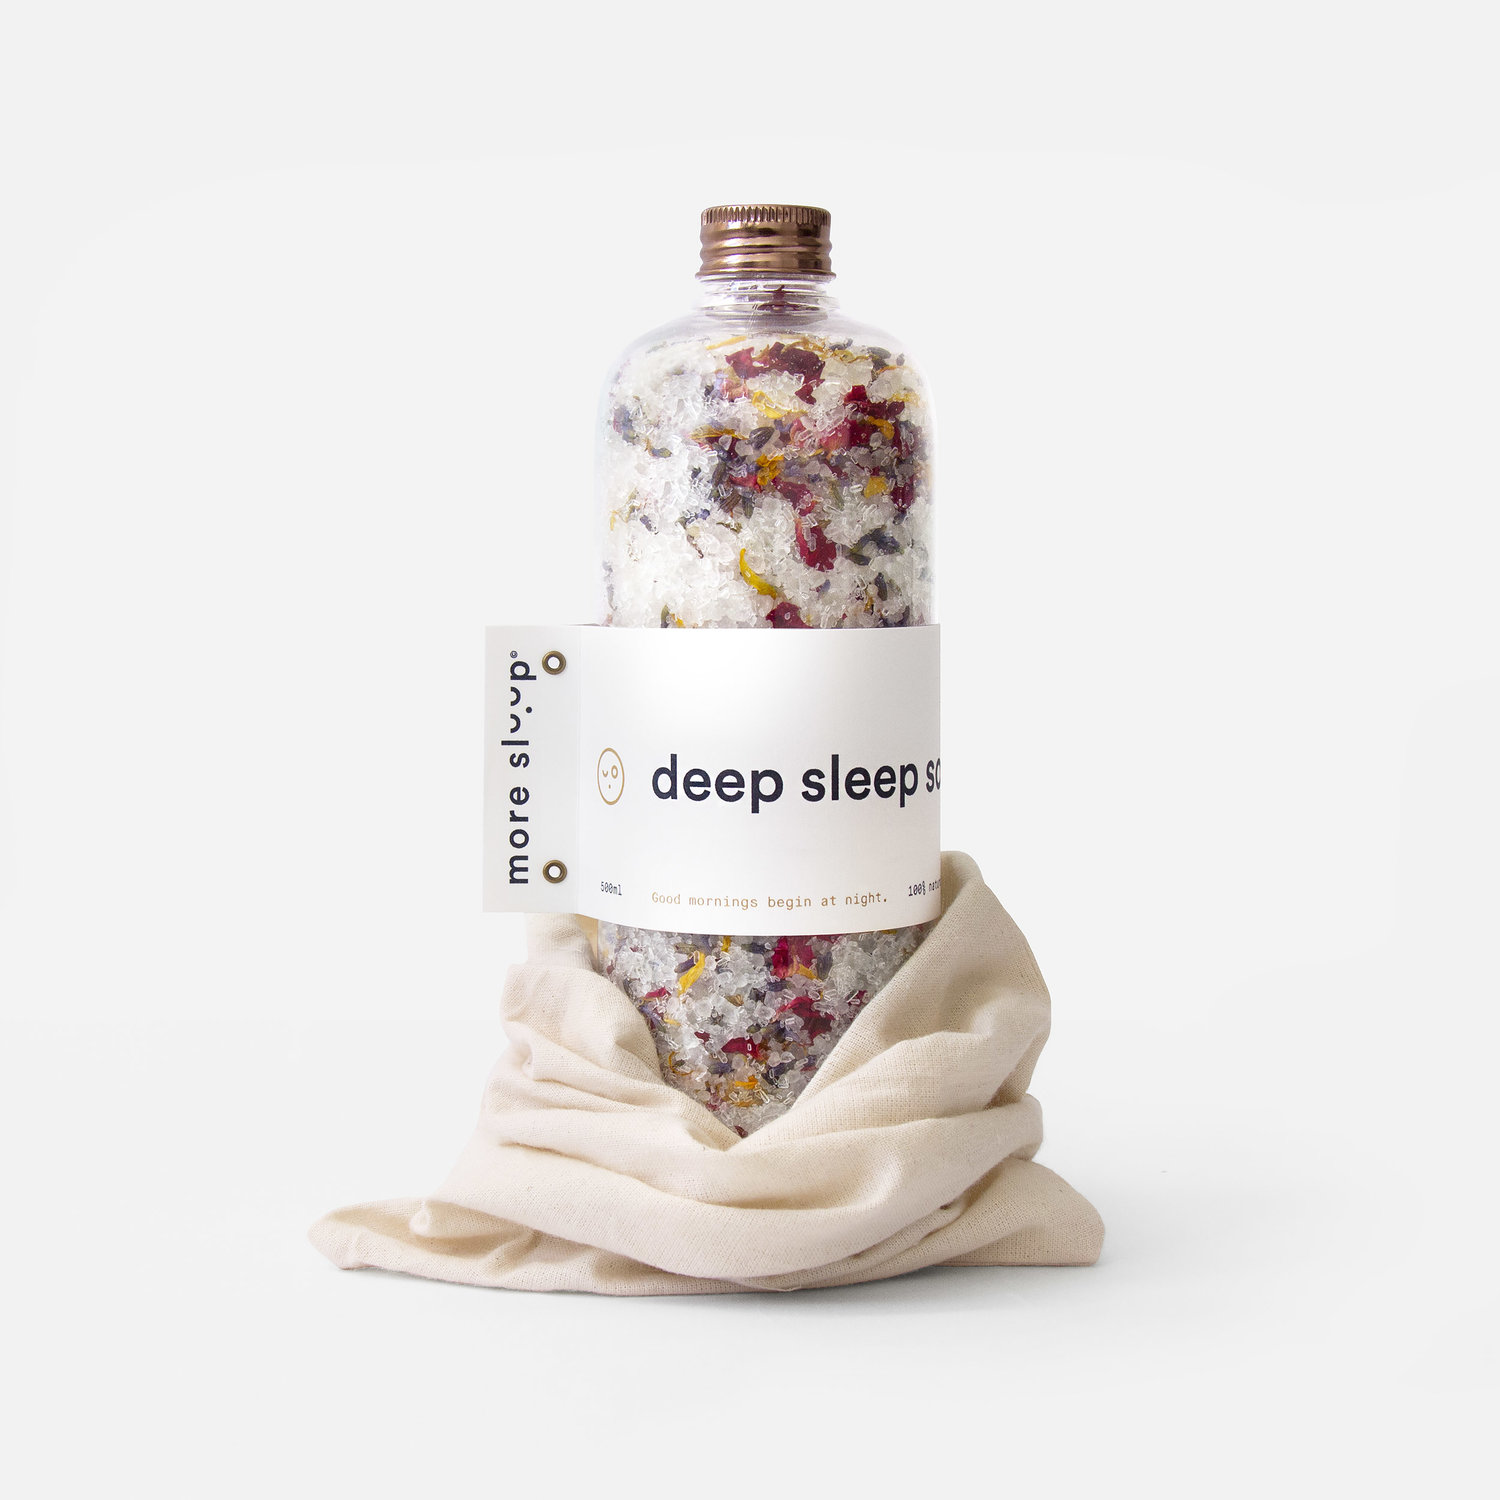 Moresleep.co Deep Sleep Soak for better sleep